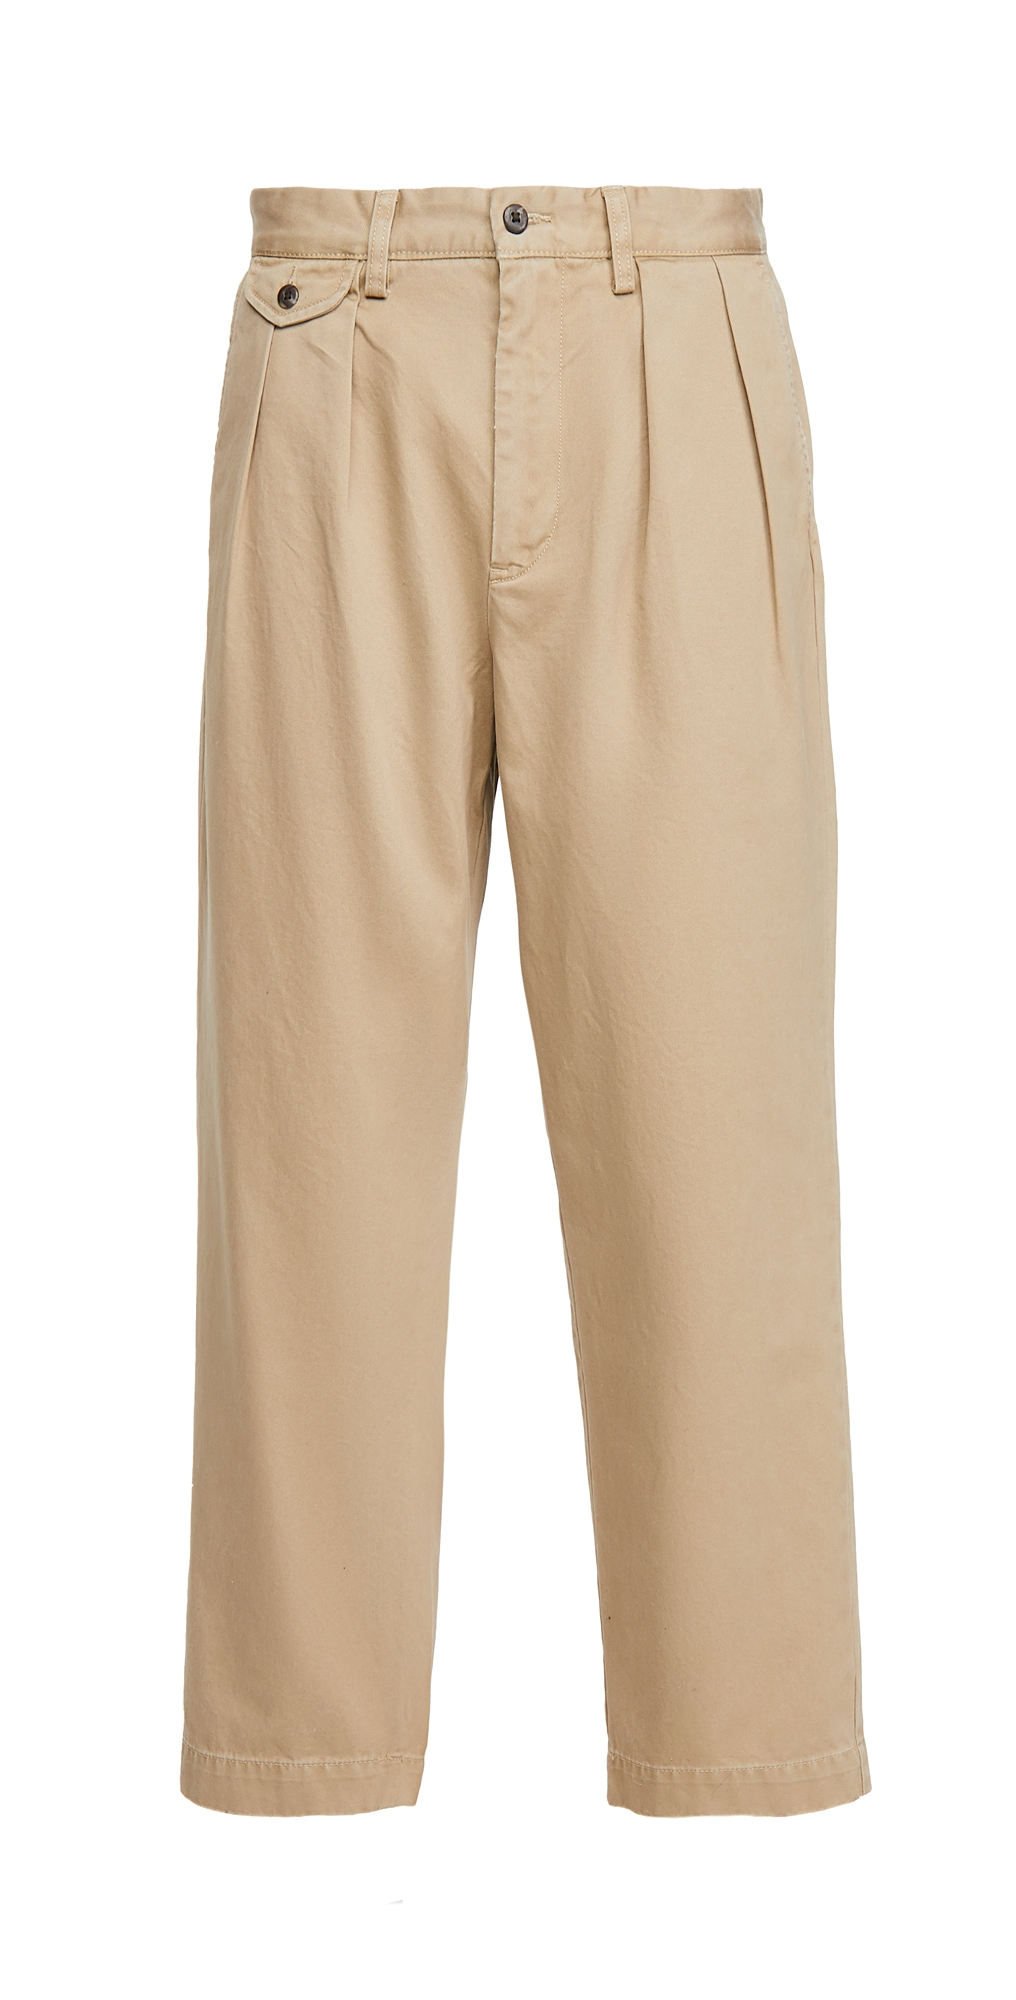 Polo Ralph Lauren Heritage Twill Pleated Chino Trousers